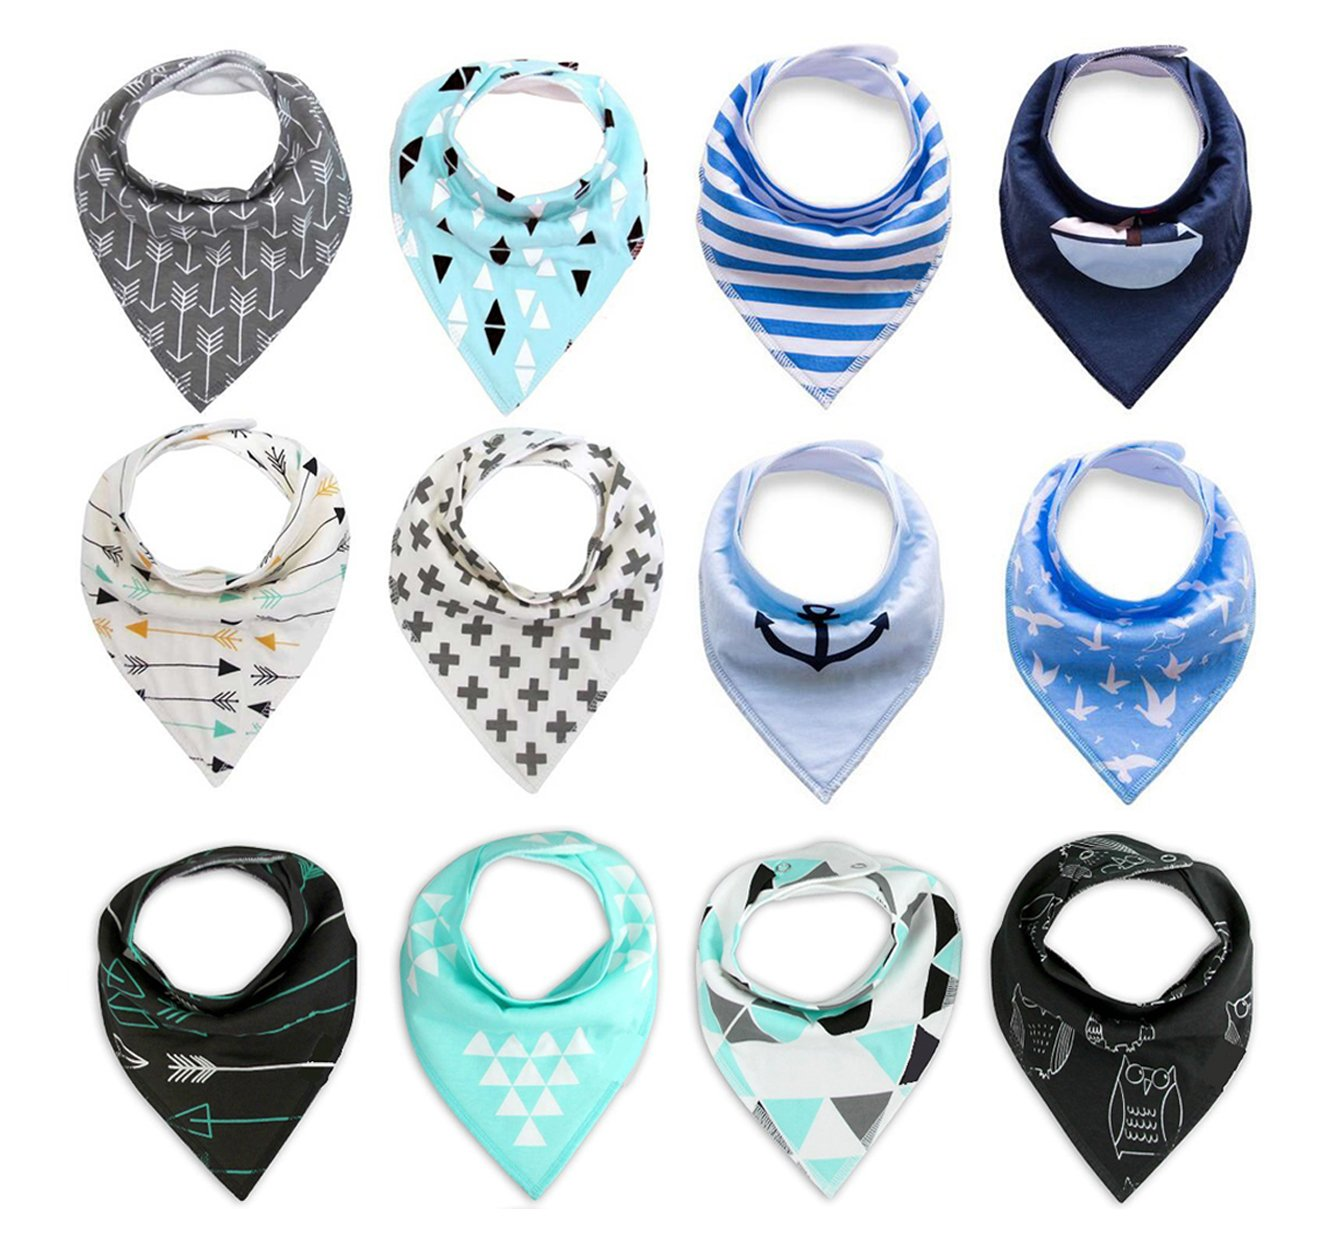 Super Absorbent Cotton Adjustable Baby Bandana Drool Bibs with 2 Snaps Unisex Baby Gift 16 Piece BabyPrice